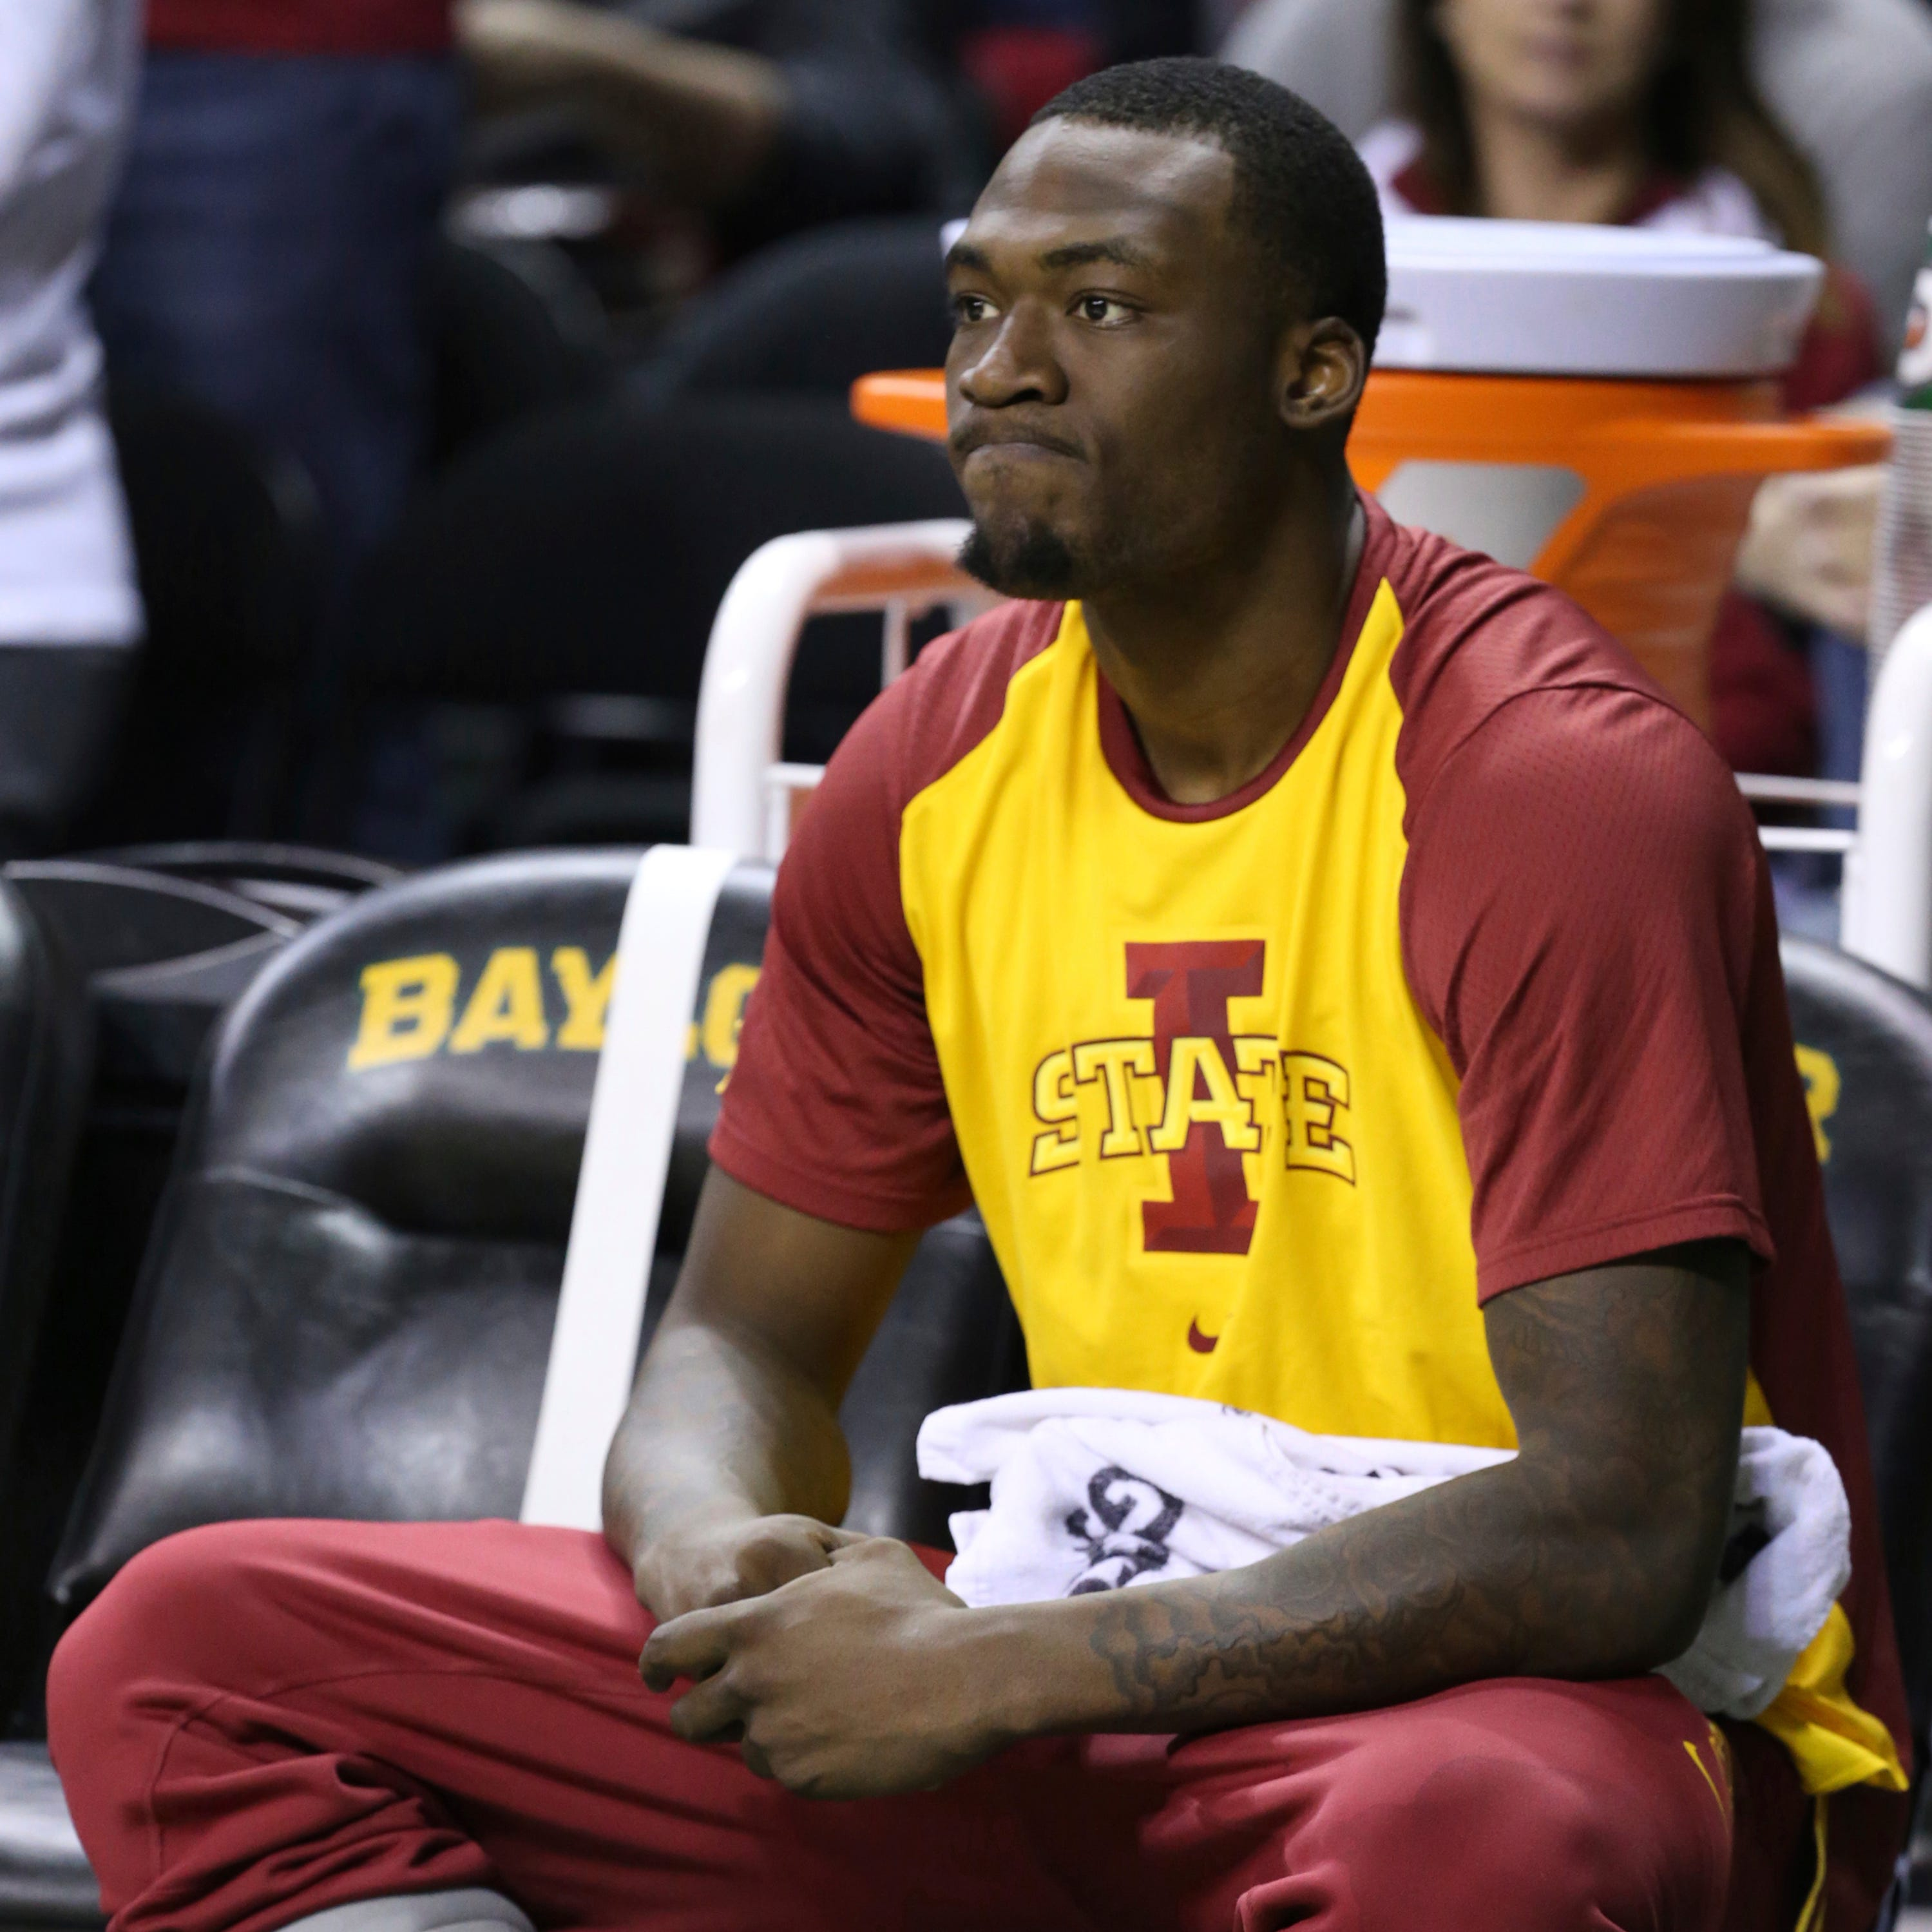 Iowa State's Lard will be in uniform against Texas Tech but Steve Prohm unsure if he'll play